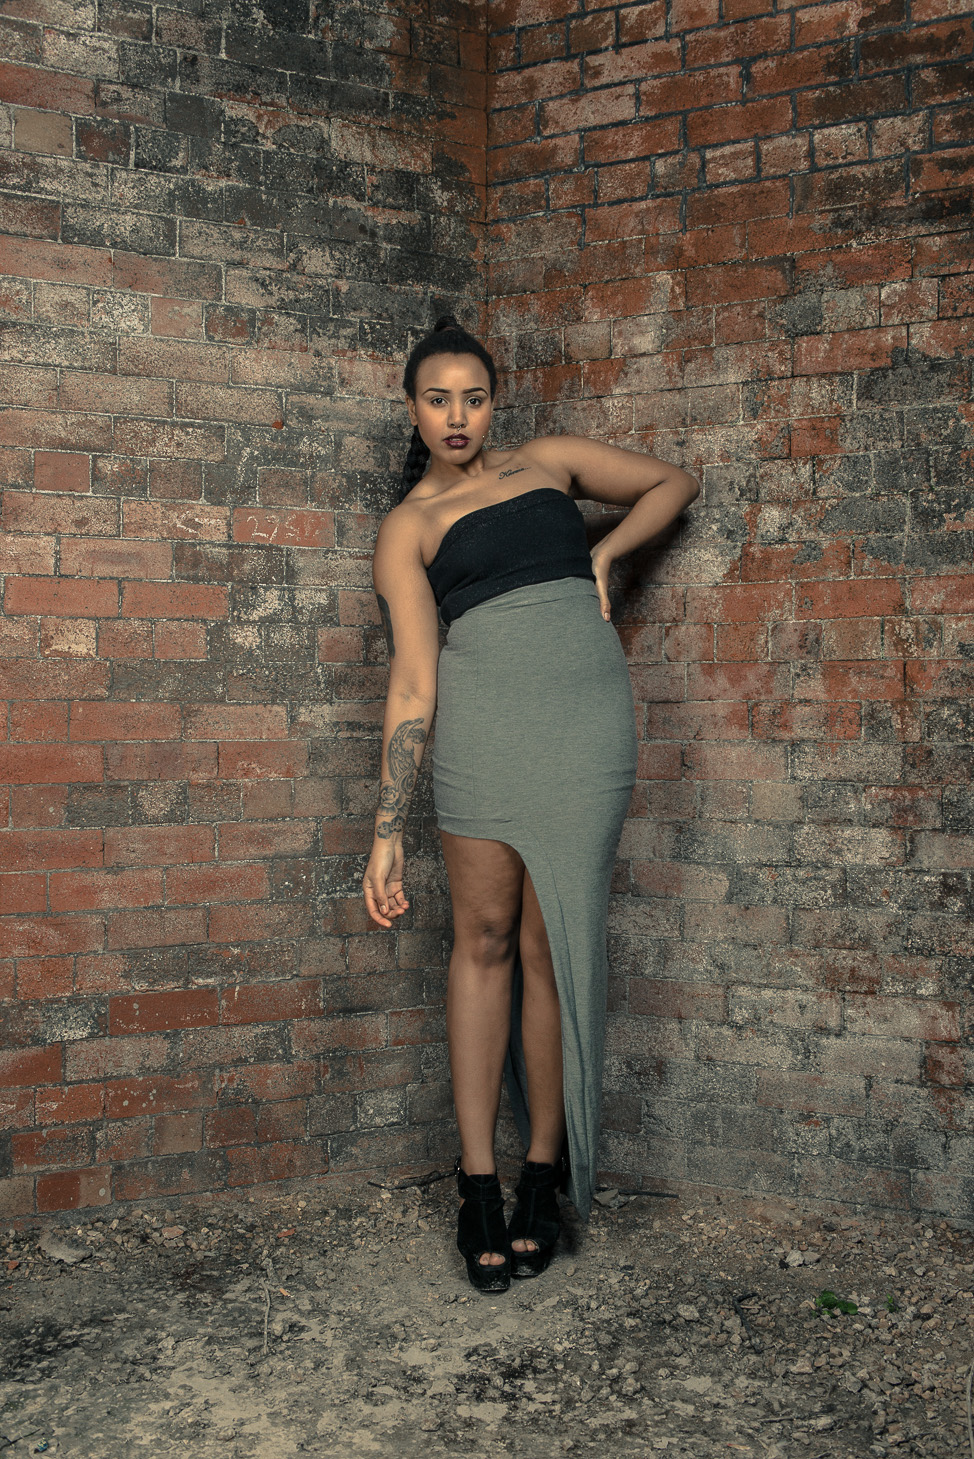 zaramia-ava-zaramiaava-leeds-fashion-designer-ethical-sustainable-tailored-minimalist-skirt-bandeau-maxi-versatile-drape-grey-bodysuit-black-obi-belt-wrap-cowl-styling-womenswear-models-photoshoot-30